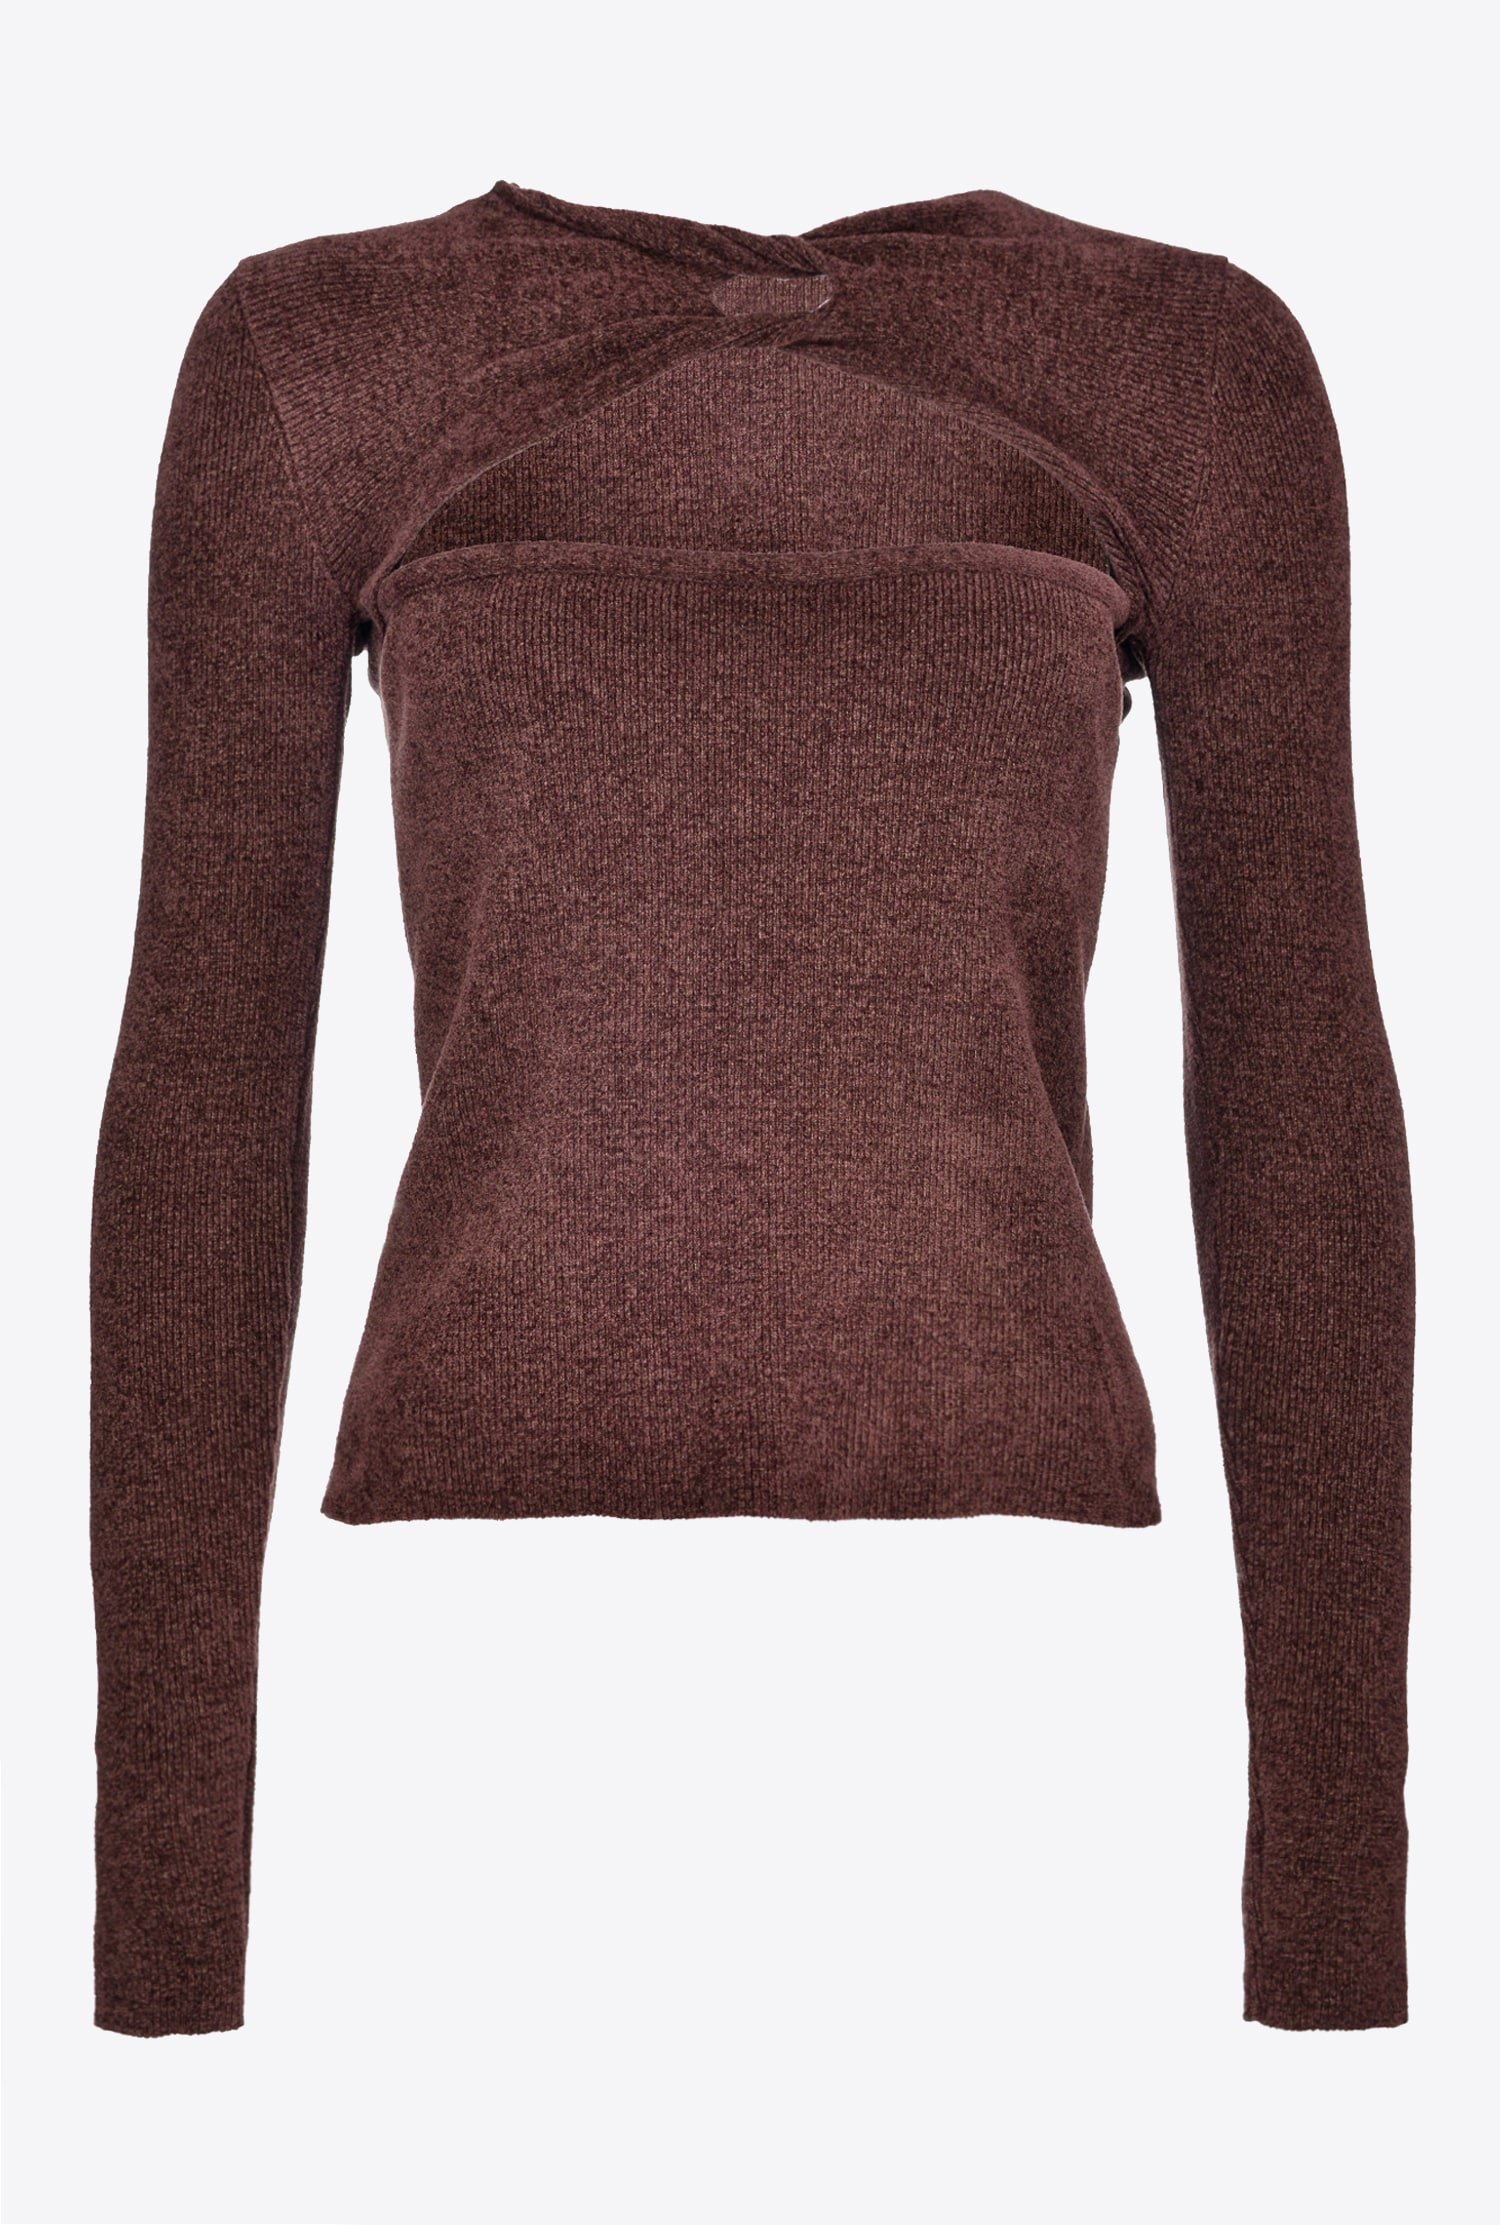 pinko chenille sweater with opening